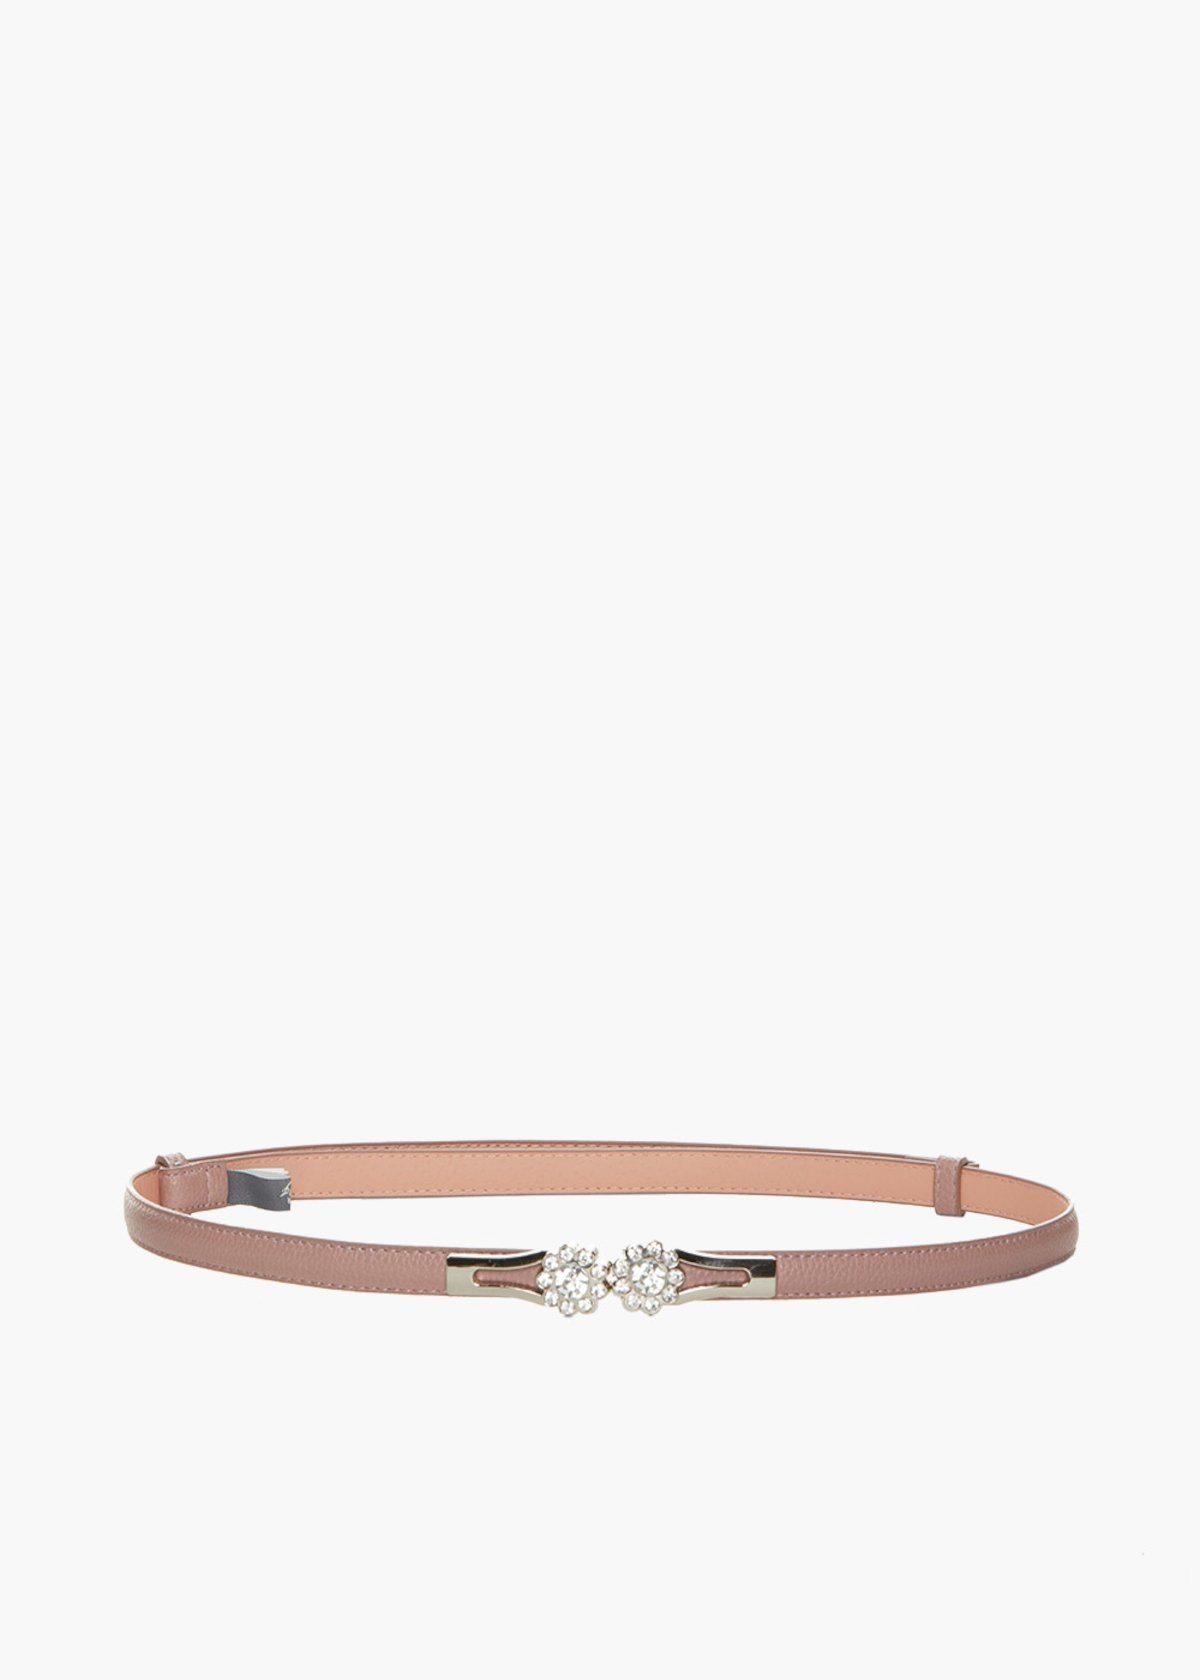 Faux leather Chiore belt deer print and rhinestone flower fastening - Calcite - Woman - Category image